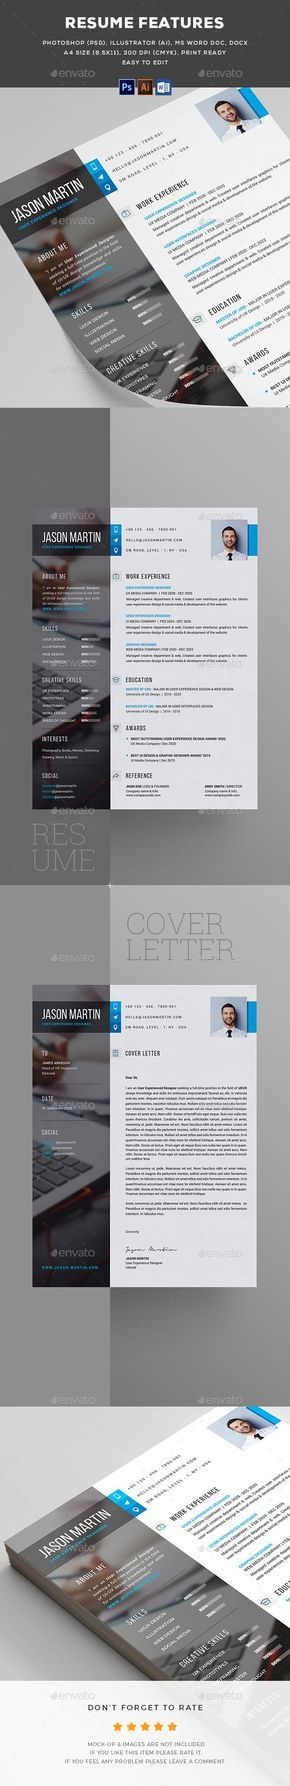 The 25+ best Infographic resume ideas on Pinterest What is a cv - infographic resume builder